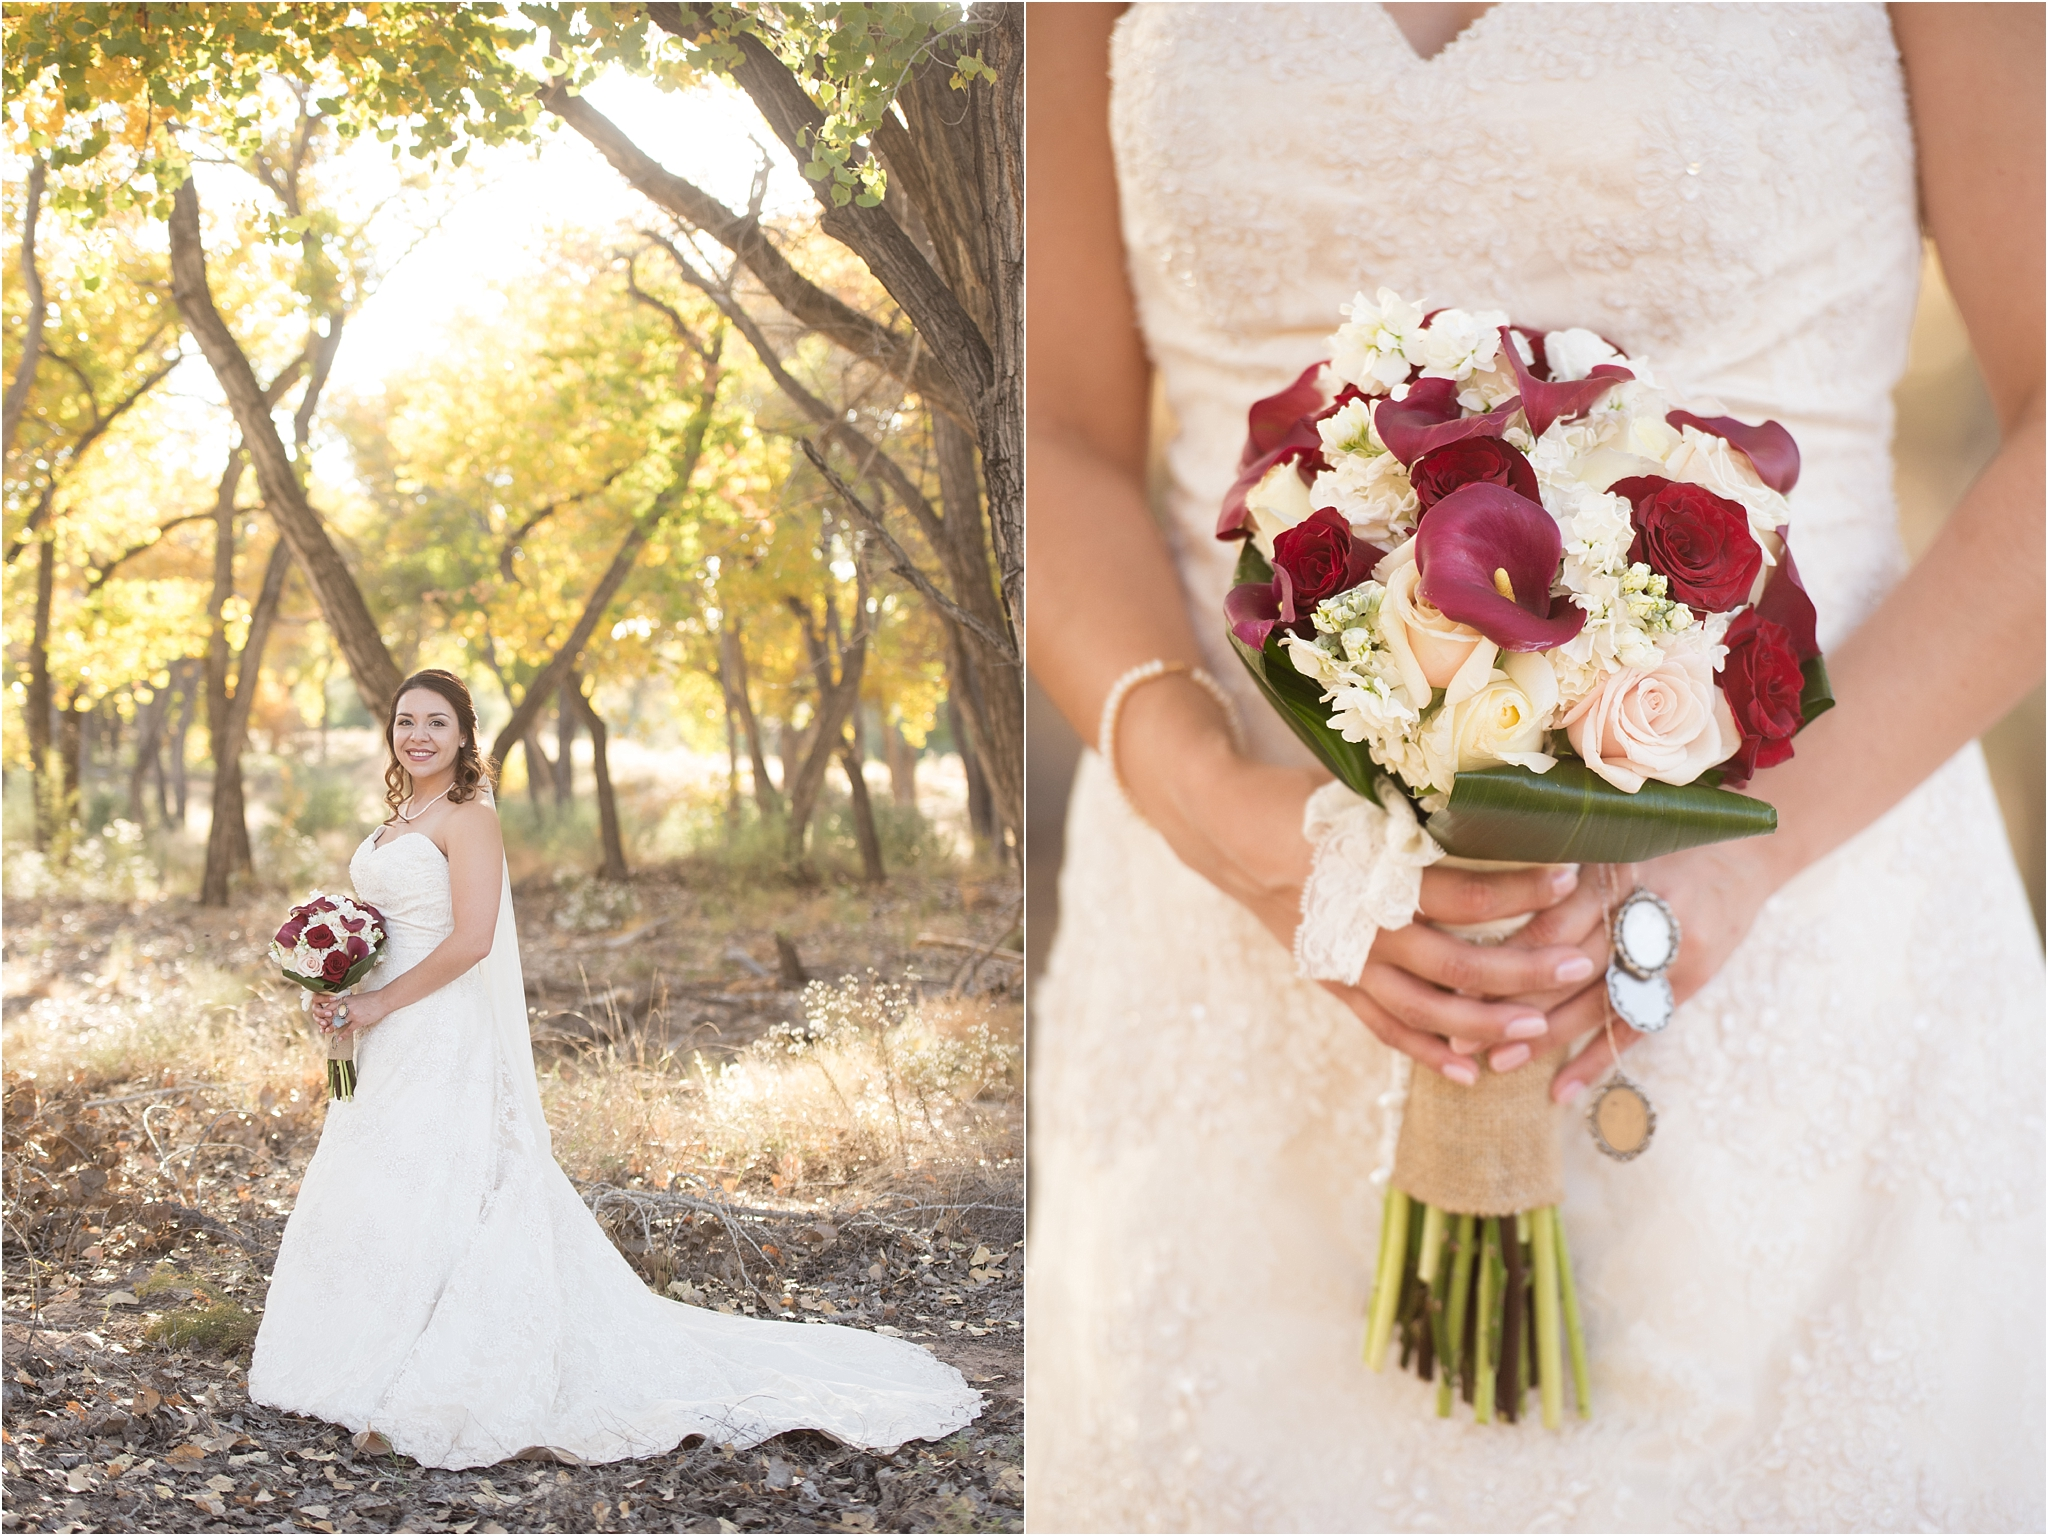 kayla kitts photography - albuquerque wedding photographer - hairpins and scissors - a cake odyssey - new mexico wedding photographer_0054.jpg